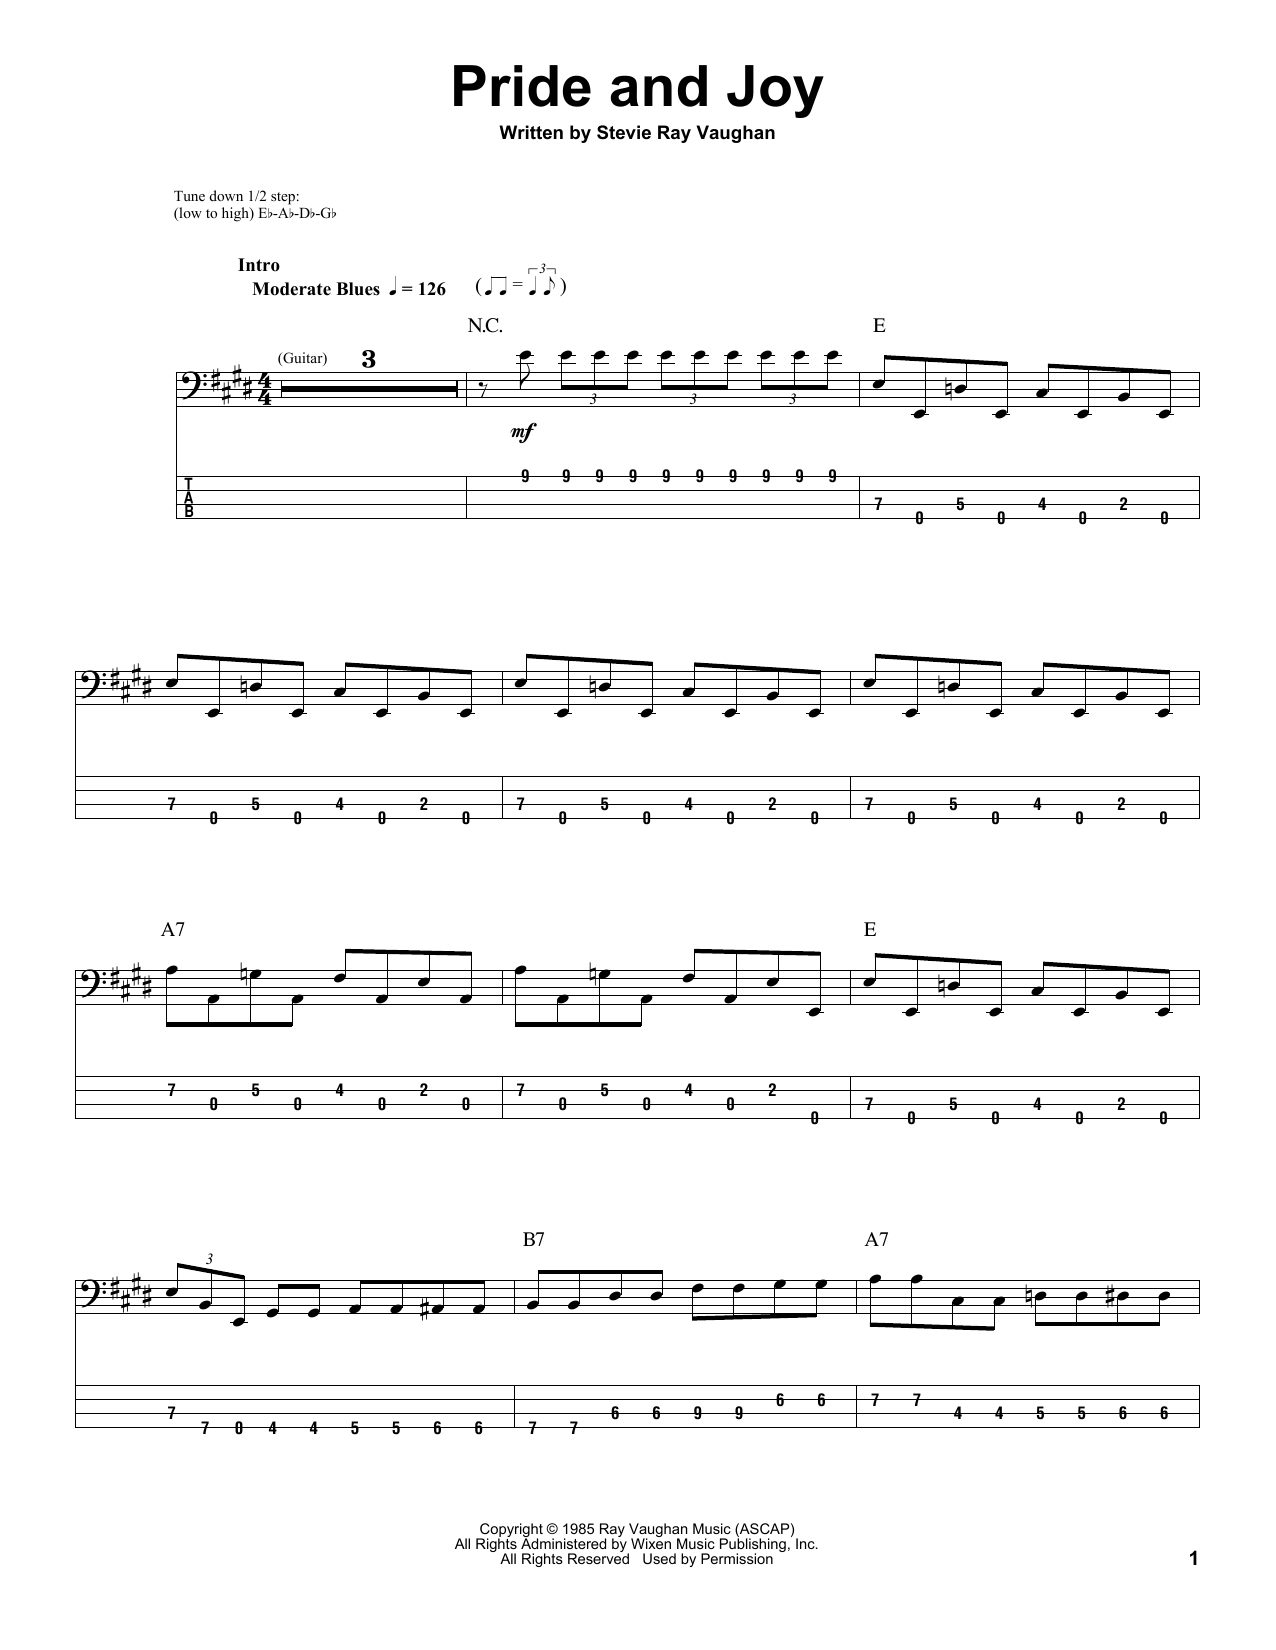 Tablature guitare Pride And Joy de Stevie Ray Vaughan - Tablature Basse